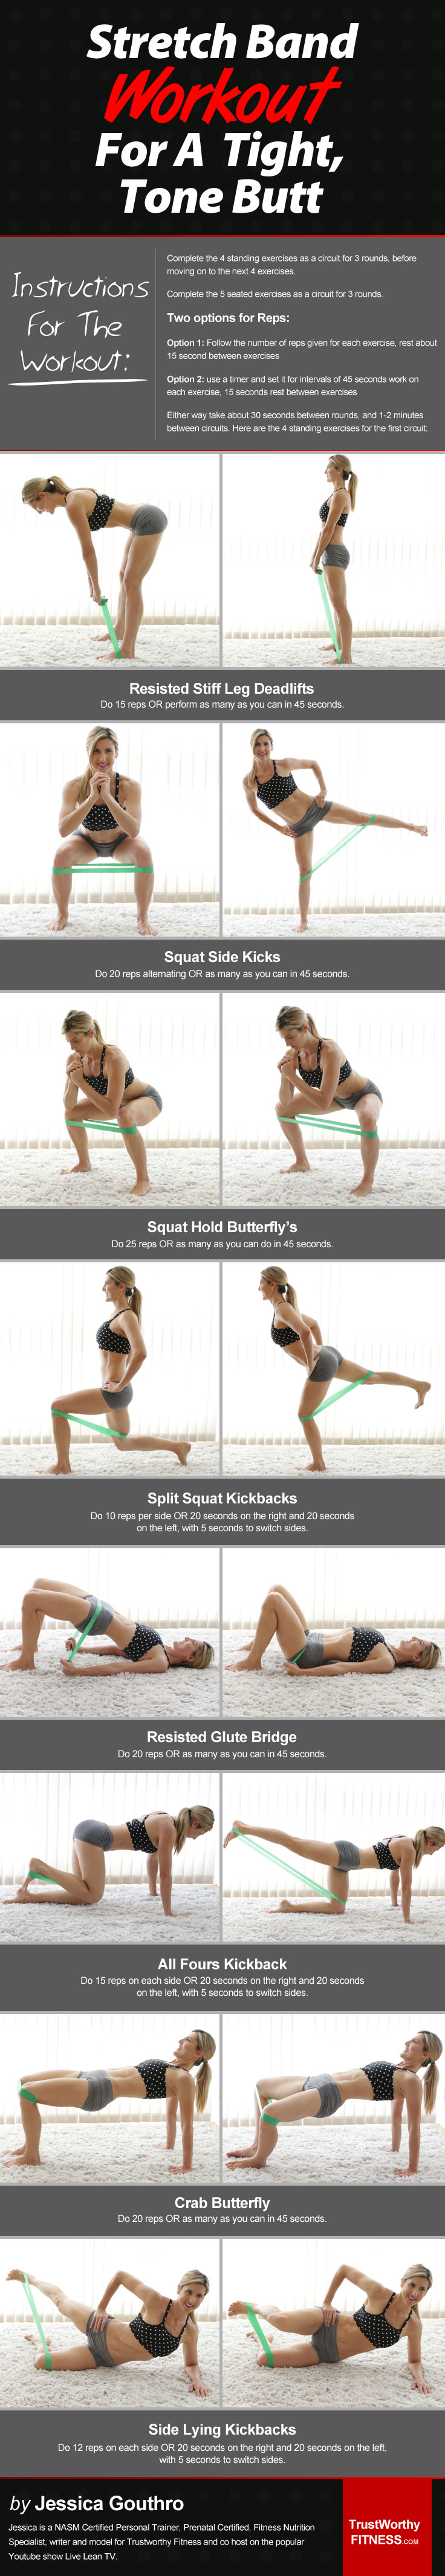 Stretch Band Workout For A Tight, Toned Butt